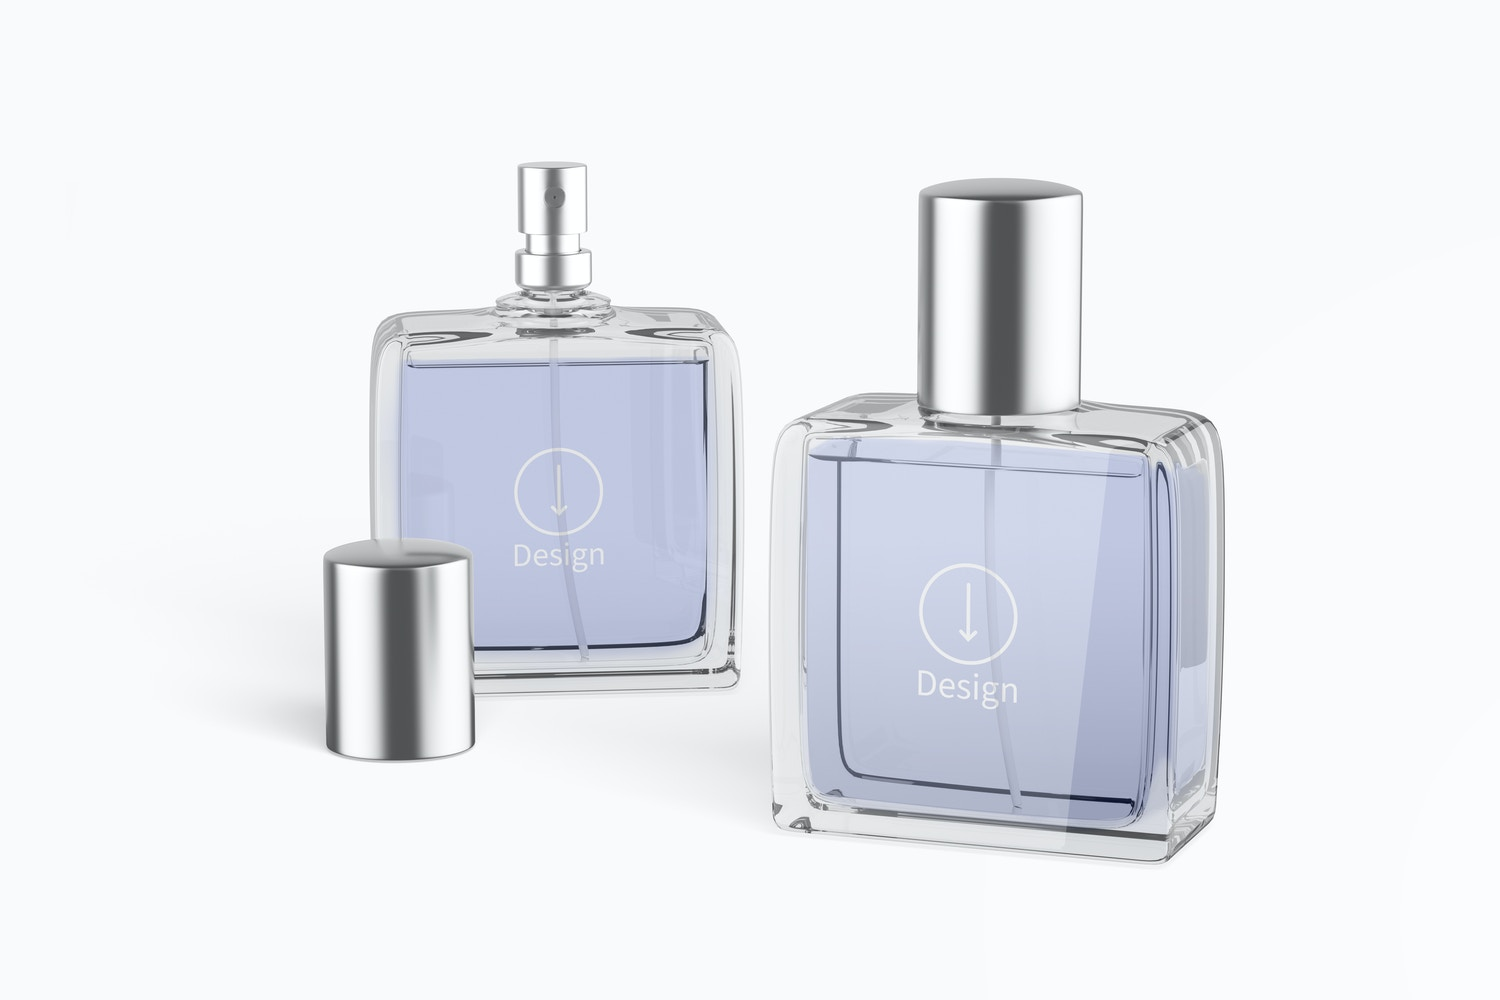 Perfume Bottles Mockup, Opened and Closed